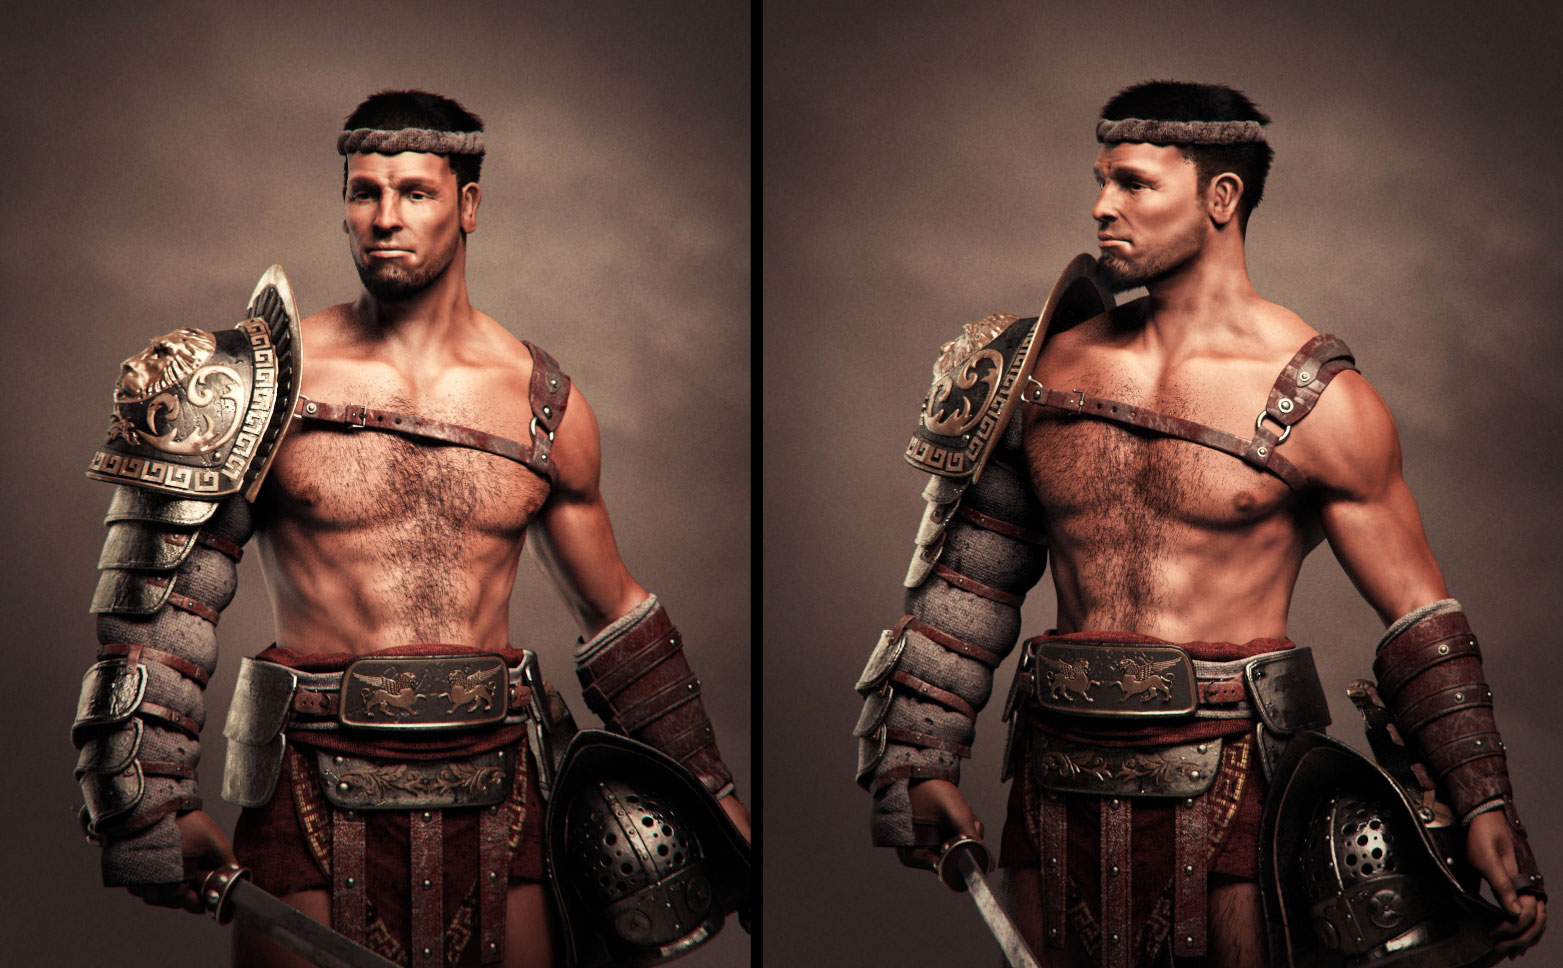 Eric Durante Portfolio Gladiator And Blur Projects HD Wallpapers Download free images and photos [musssic.tk]